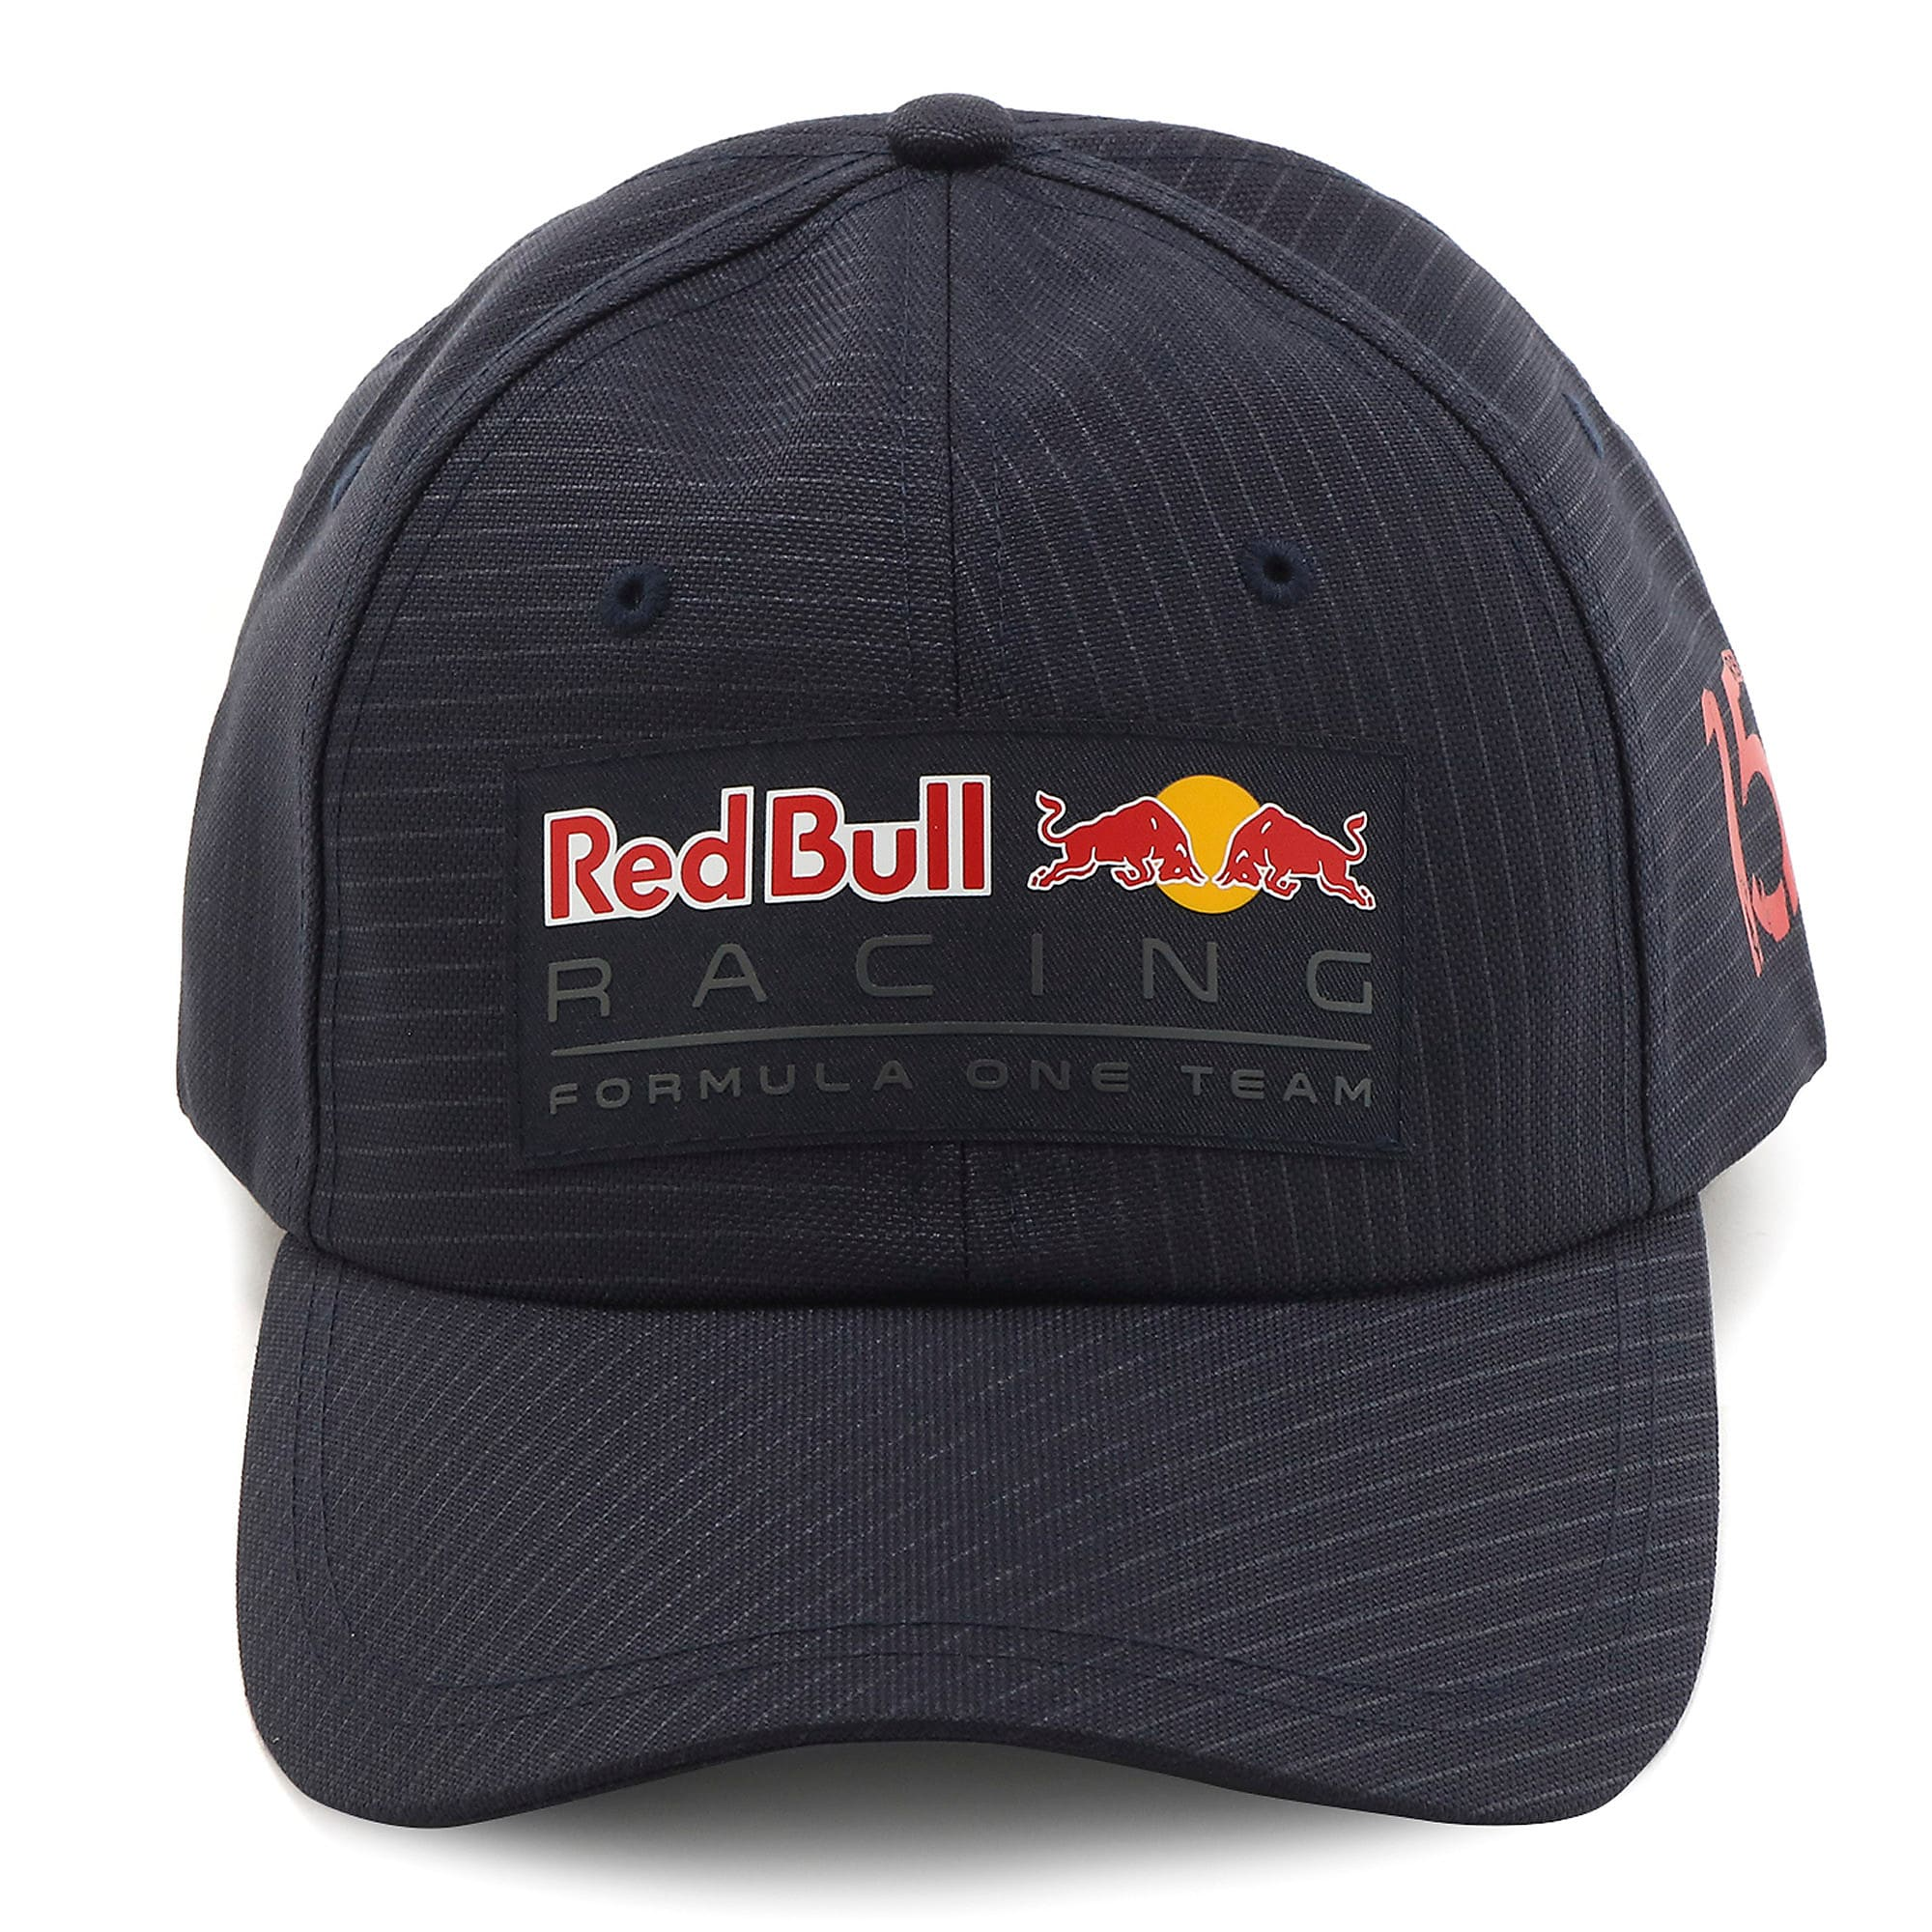 Thumbnail 4 of RED BULL RACING ライフスタイル BB キャップ, NIGHT SKY, medium-JPN